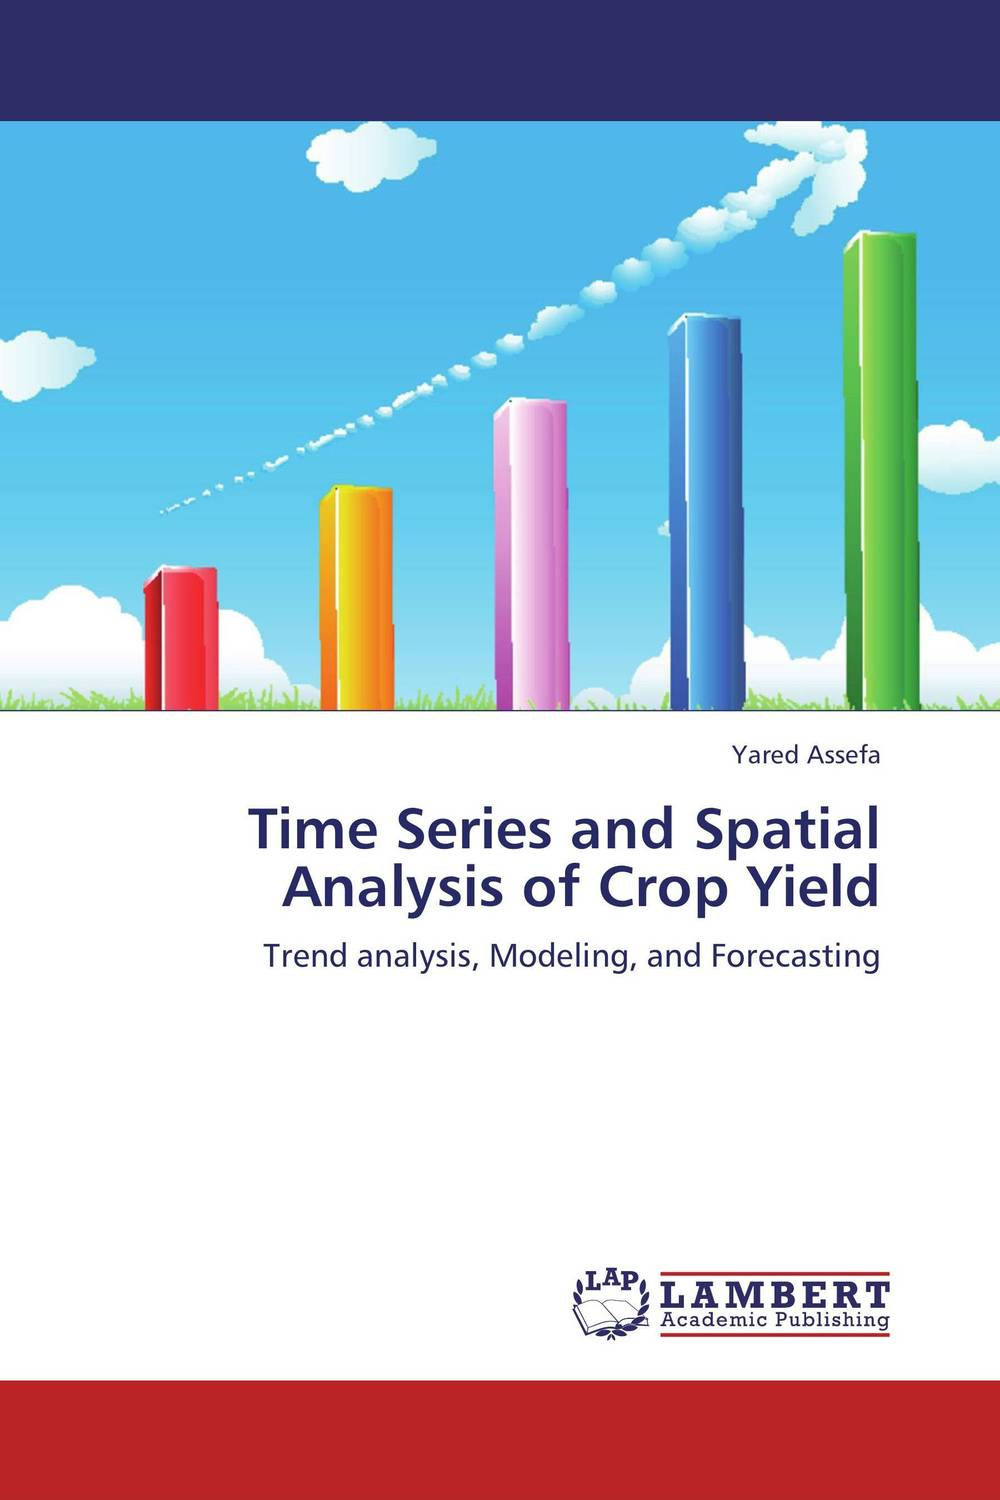 Time Series and Spatial Analysis of Crop Yield time drive how to have time to live and to work